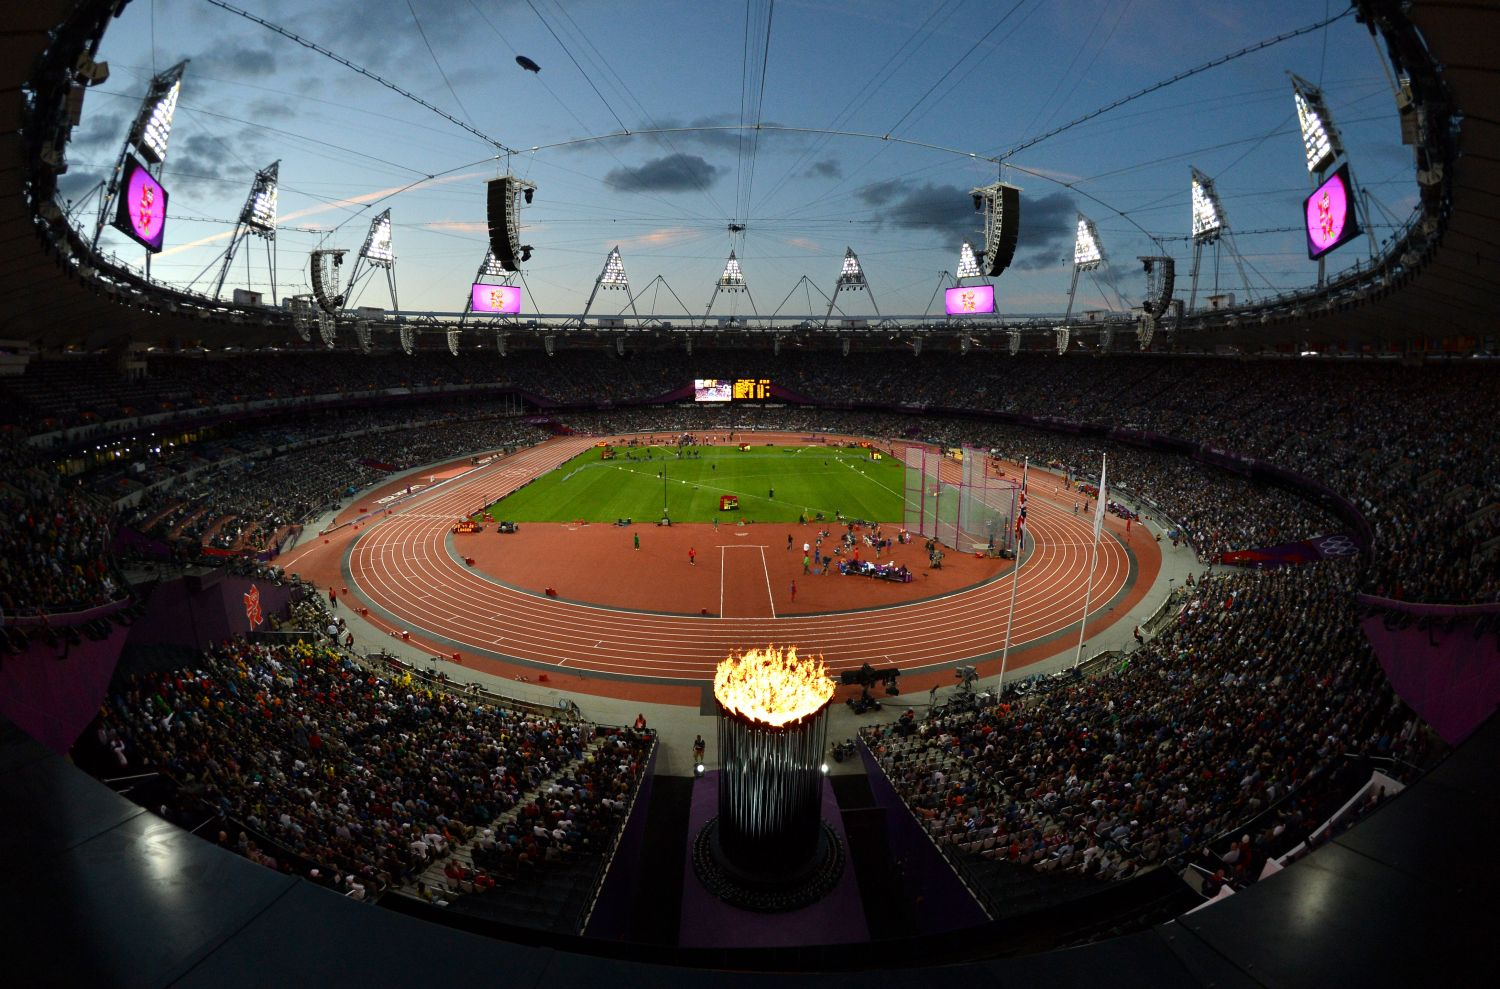 Olympic Stadium at night with flame